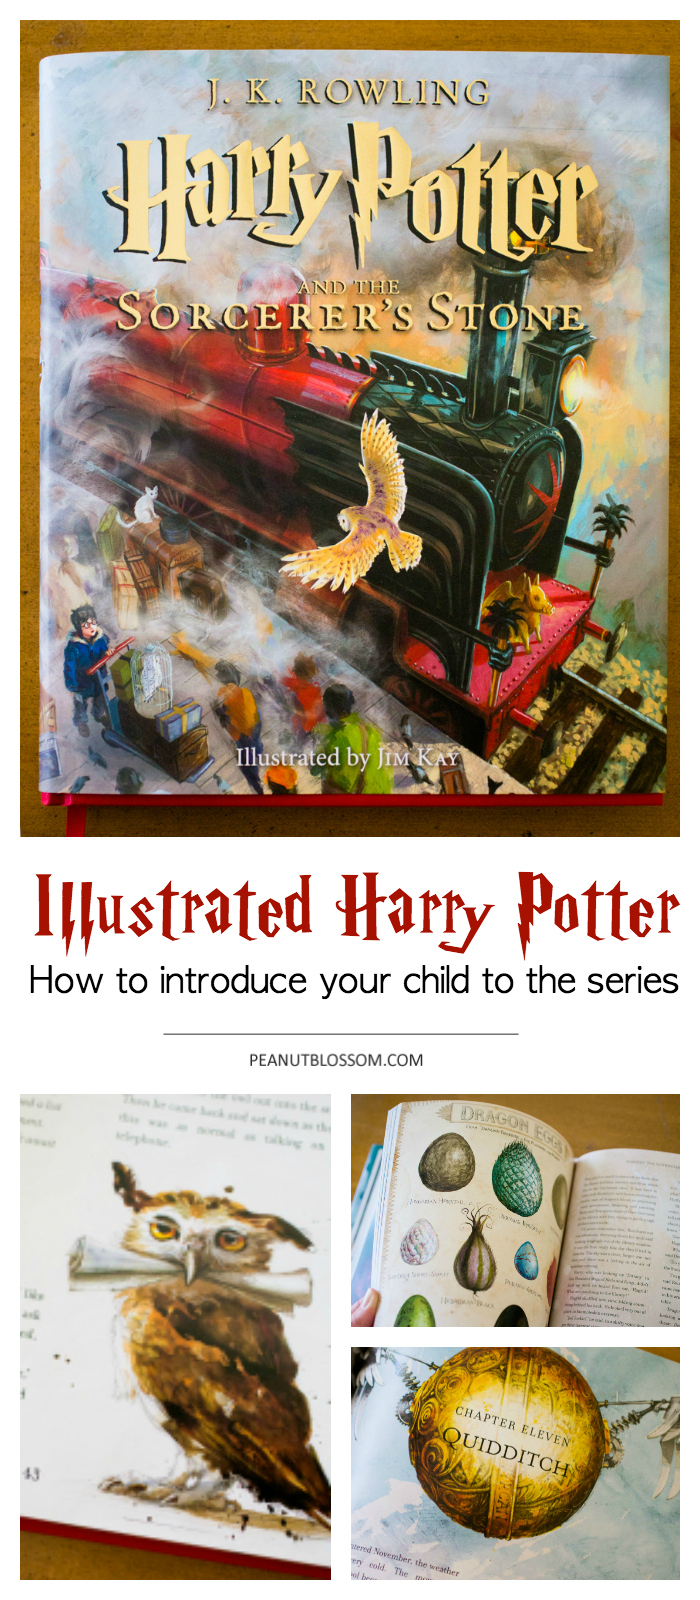 What is the perfect Harry Potter age for introducing the books? The Illustrated Harry Potter is the perfect way to start.